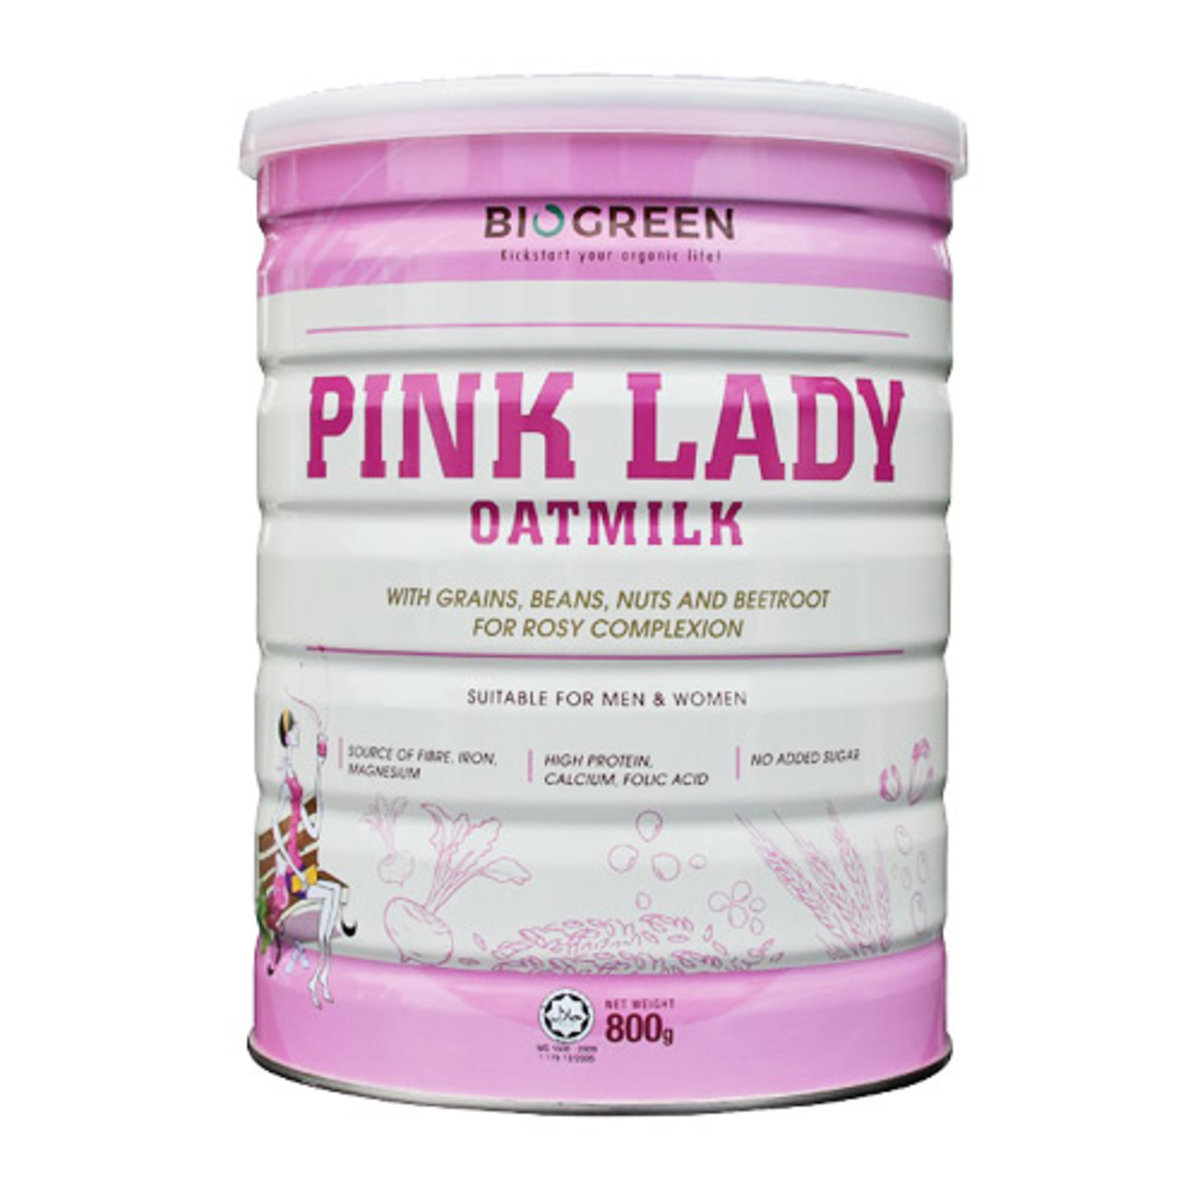 Pink Lady Oatmilk